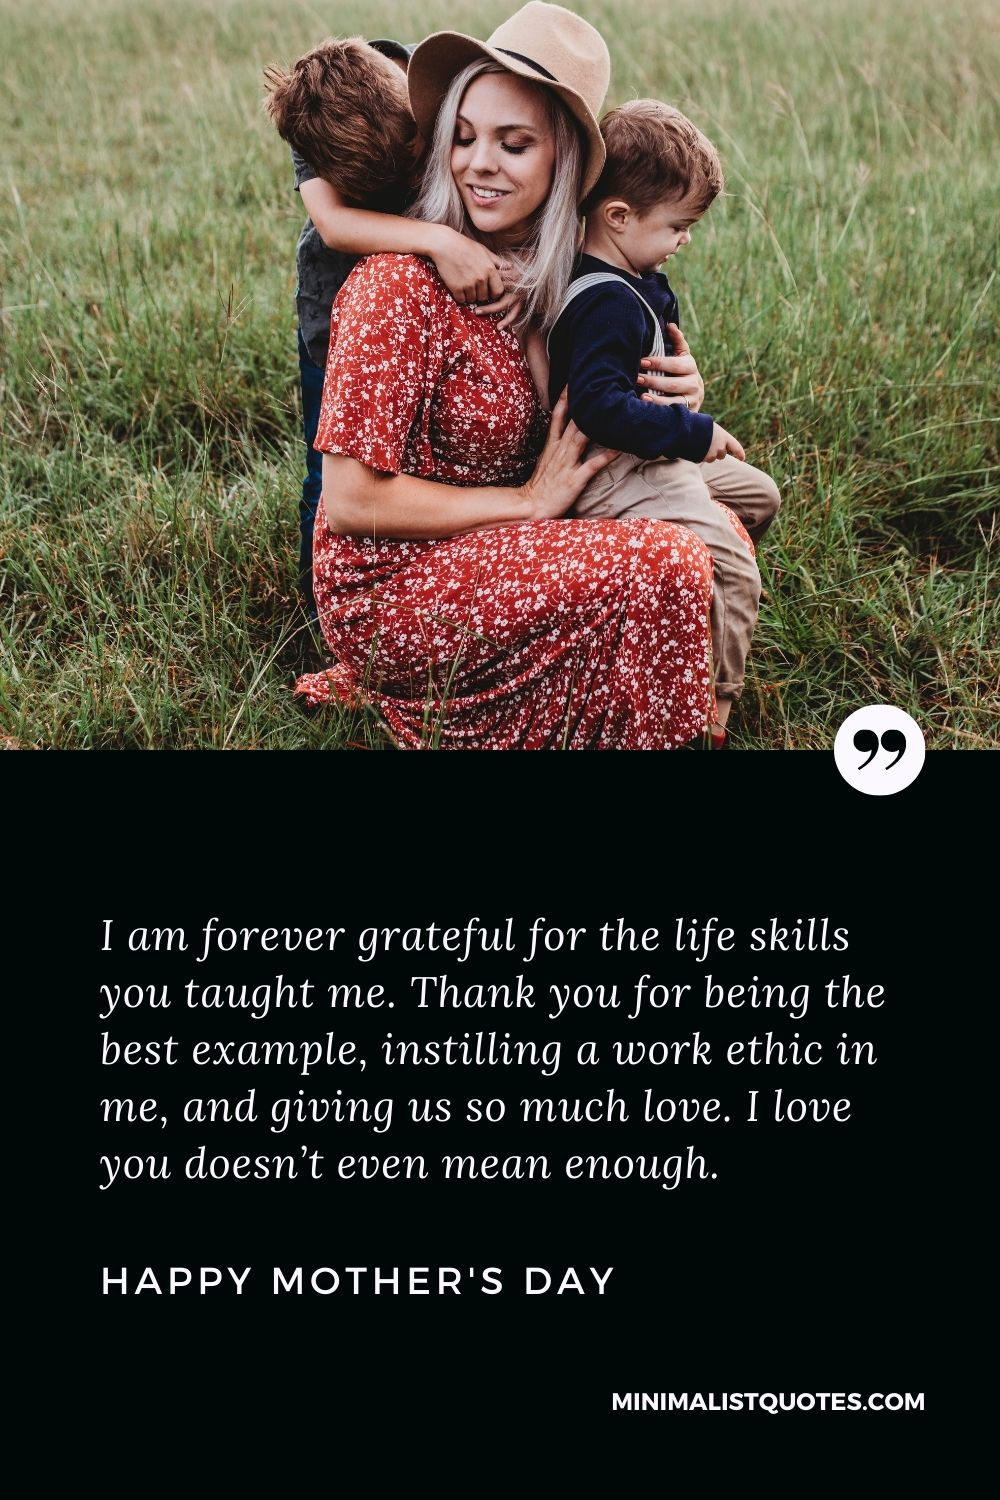 Mother's Day wish, message & quote with HD image: I am forever grateful for the life skills you taught me. Thank you for being the best example, instilling a work ethic in me, and giving us so much love. I love you doesn't even mean enough. Happy Mother's Day!